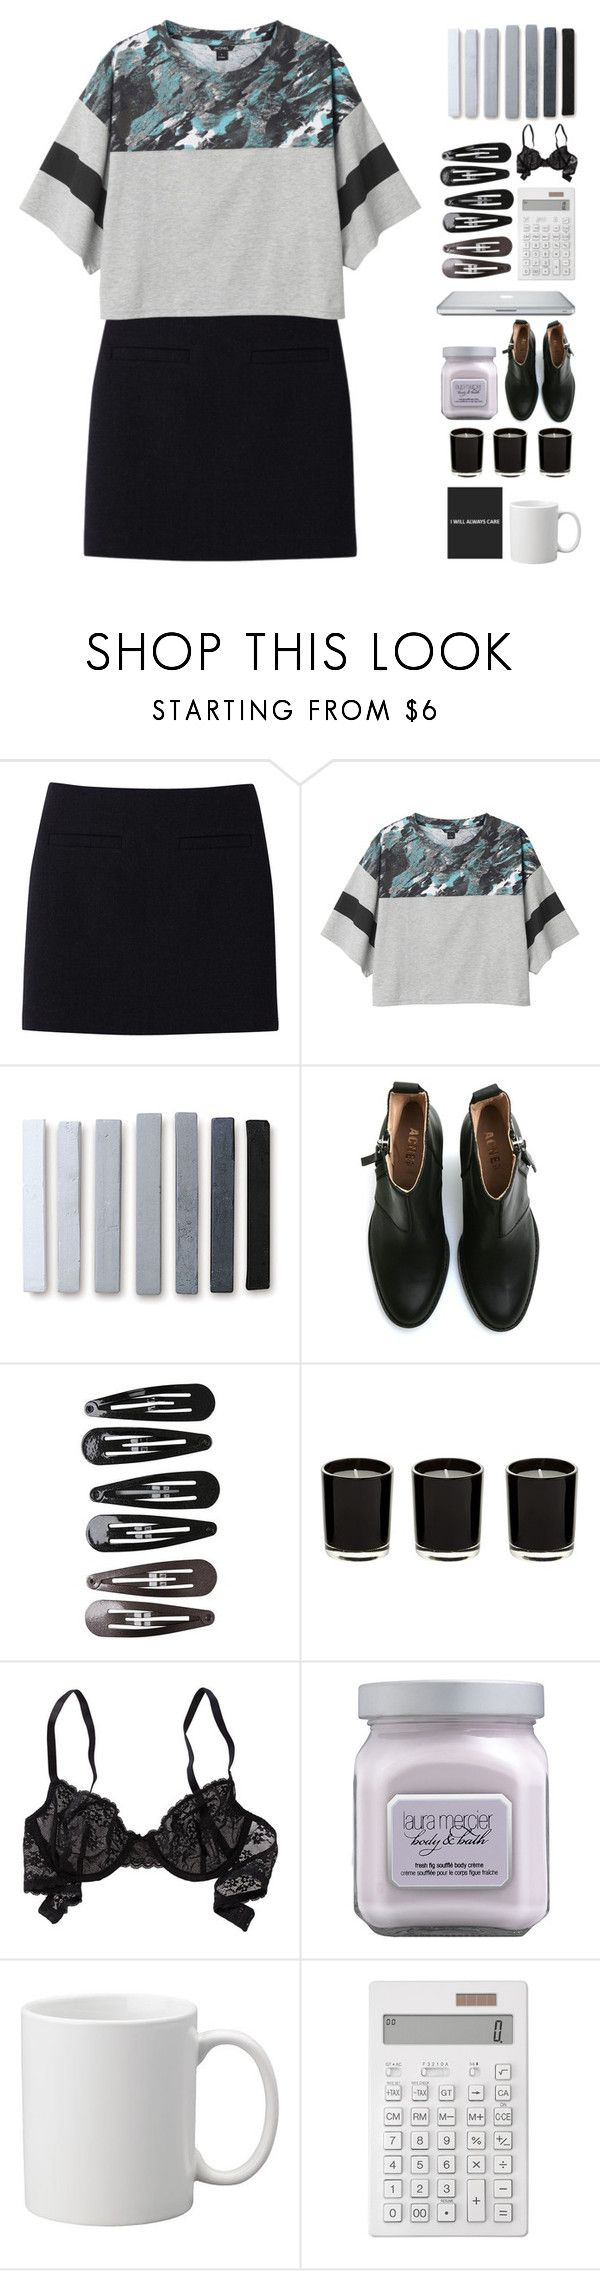 """""""""""I'll be at the wake, all dressed in black, I'll call out your name, but you won't call back"""" 💀"""" by kristen-gregory-sexy-sports-babe ❤ liked on Polyvore featuring Uniqlo, Monki, Acne Studios, Clips, Aerie, Laura Mercier, Muji and claudiasfashionsets"""